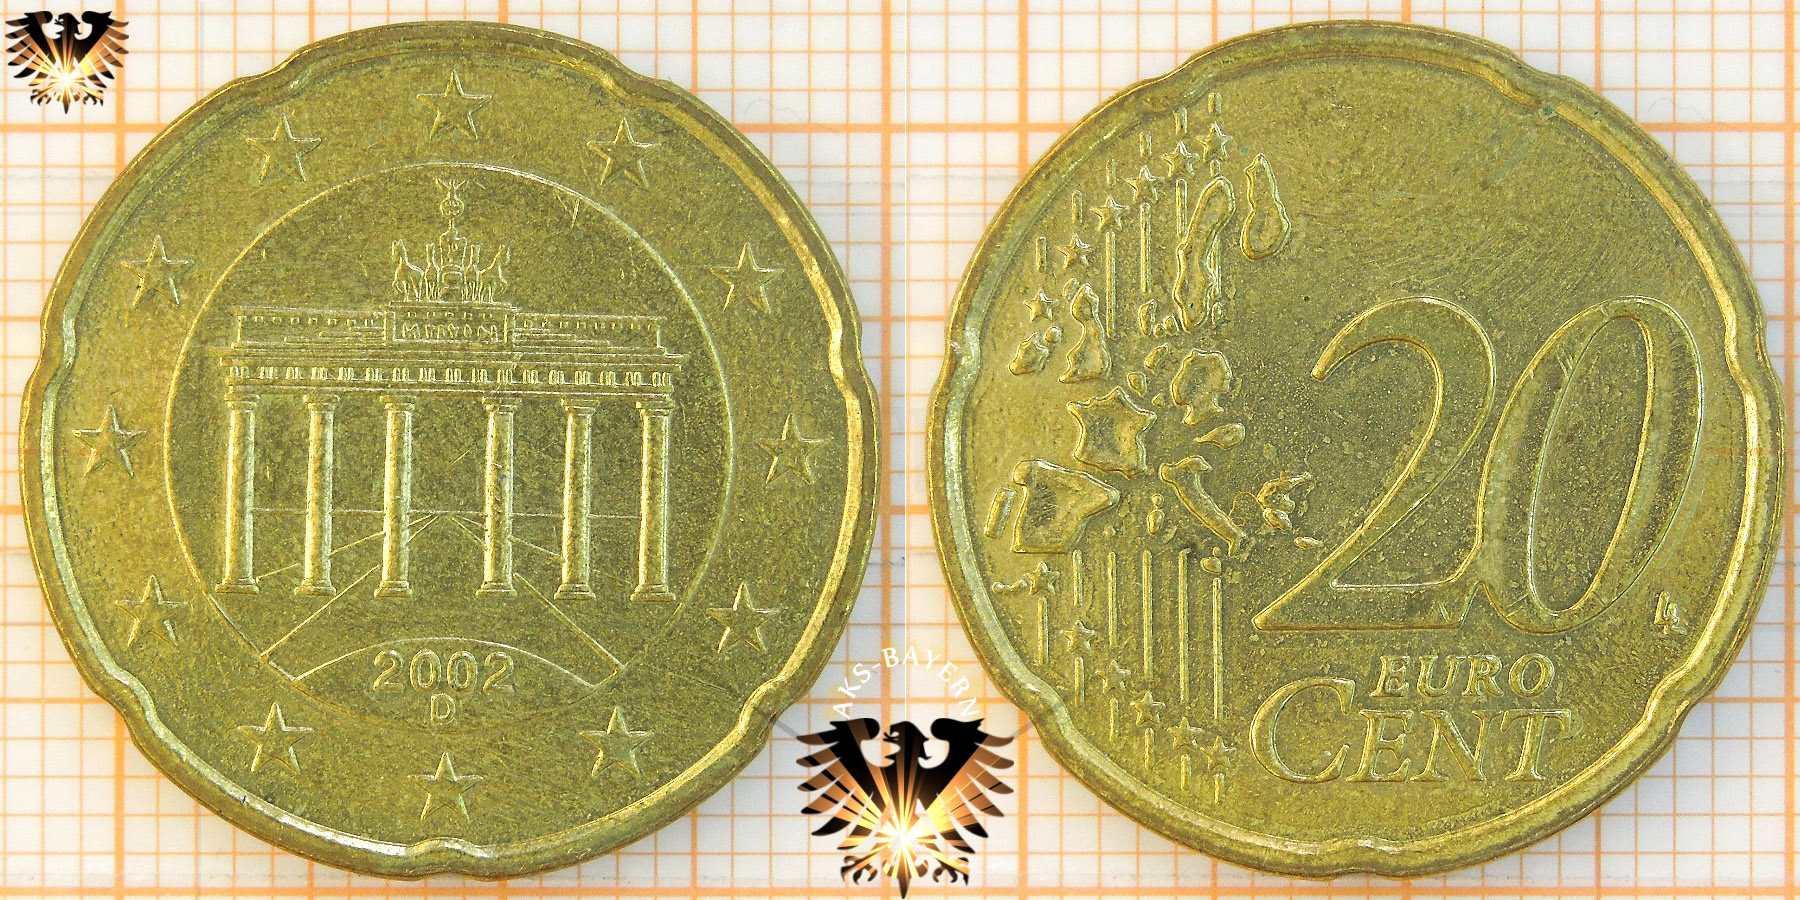 20 Cent Brd 2002 D Nominal Eurocent